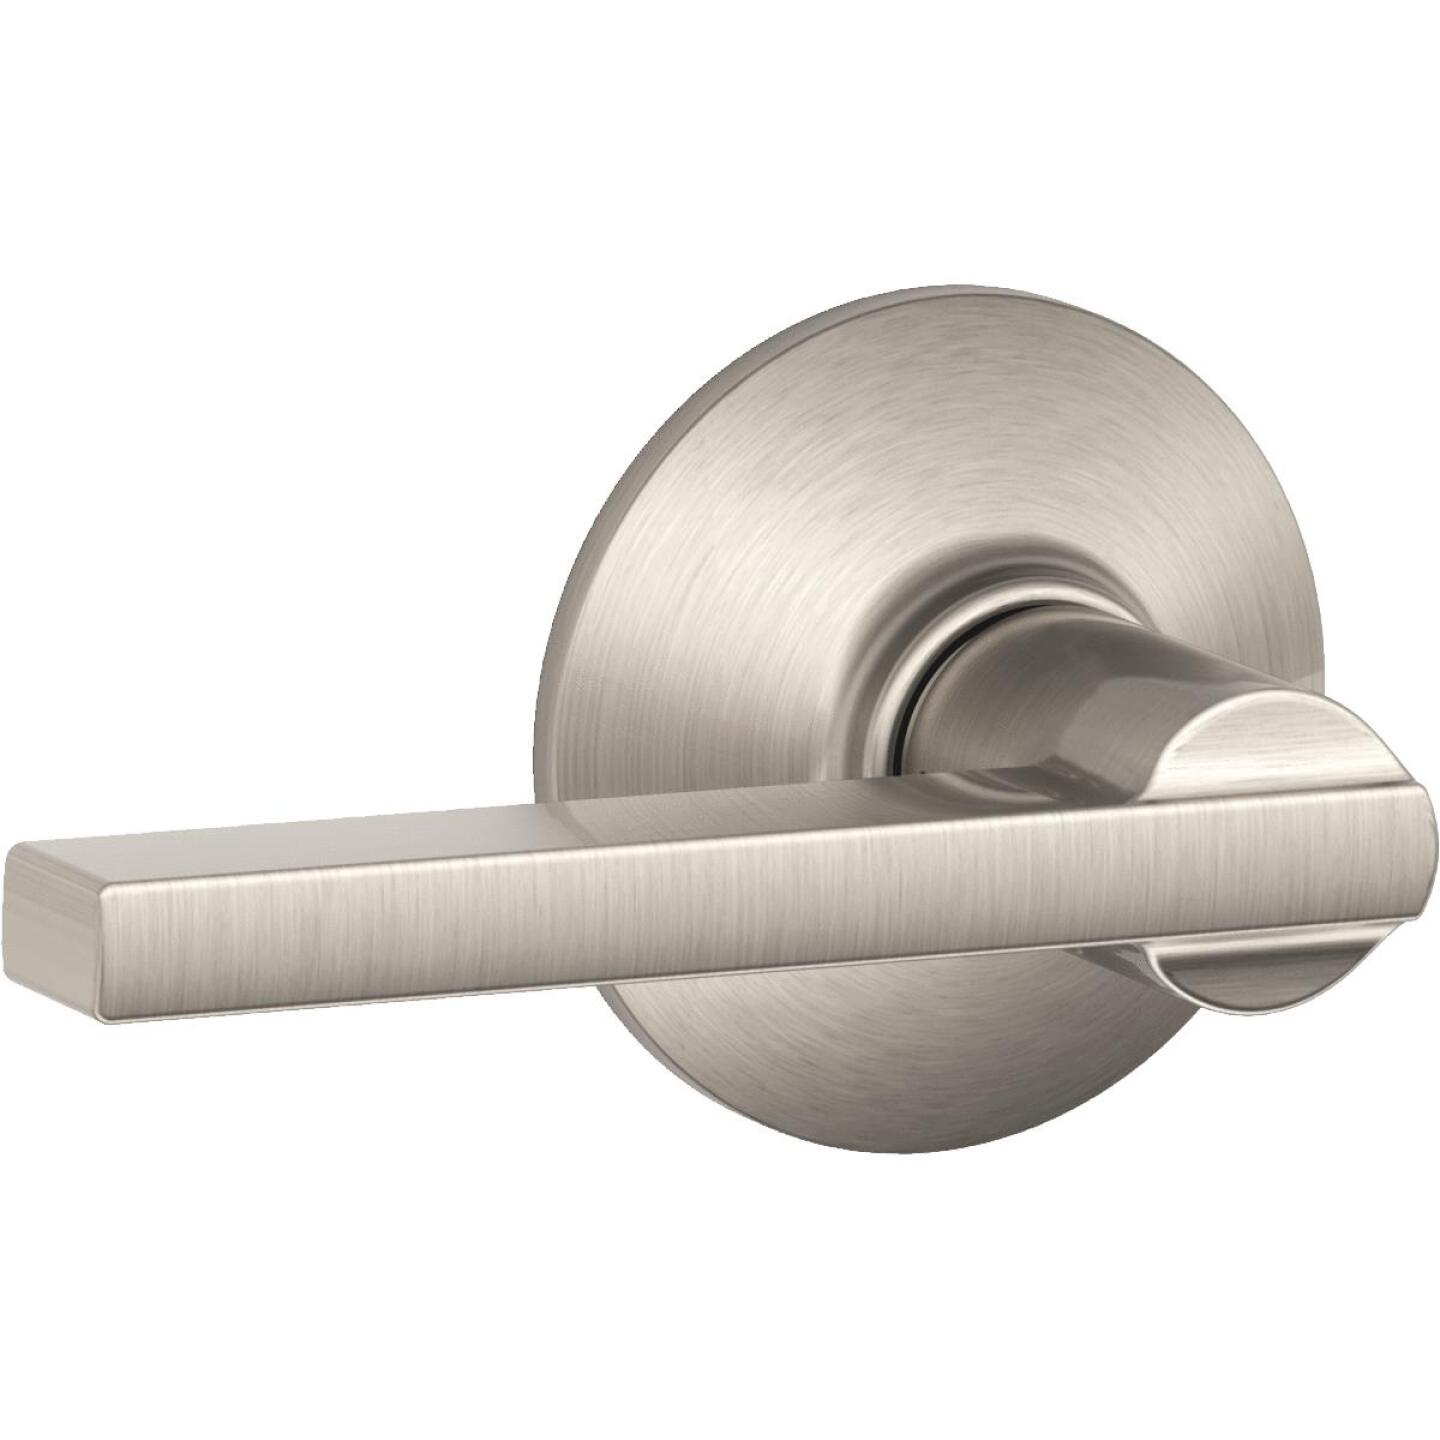 Schlage Latitude Satin Nickel Passage Door Lever Image 1